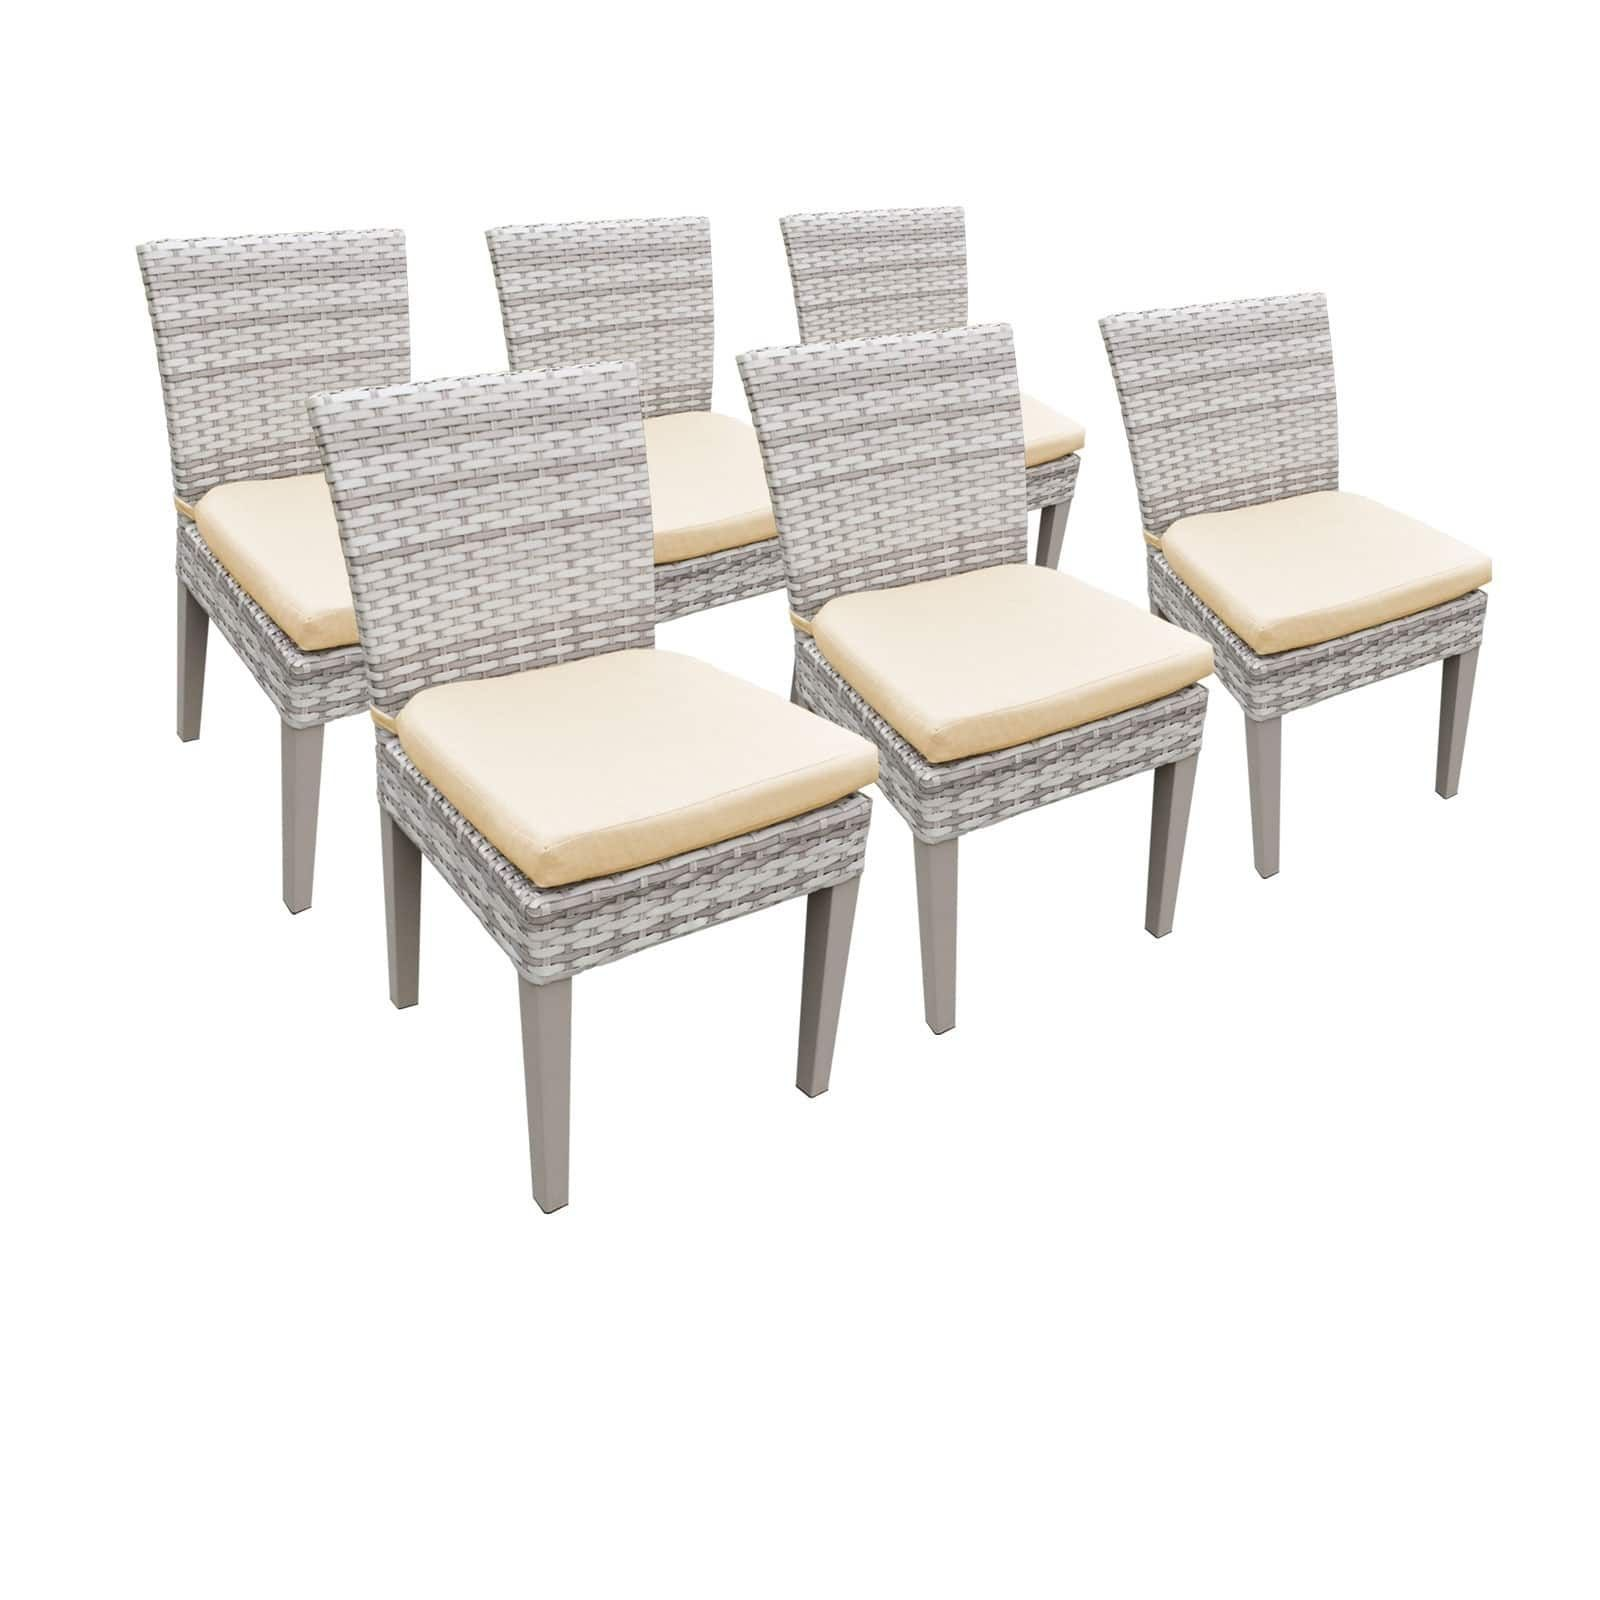 Catamaran Outdoor Patio Wicker Side Chairs With Seat Cushions Set